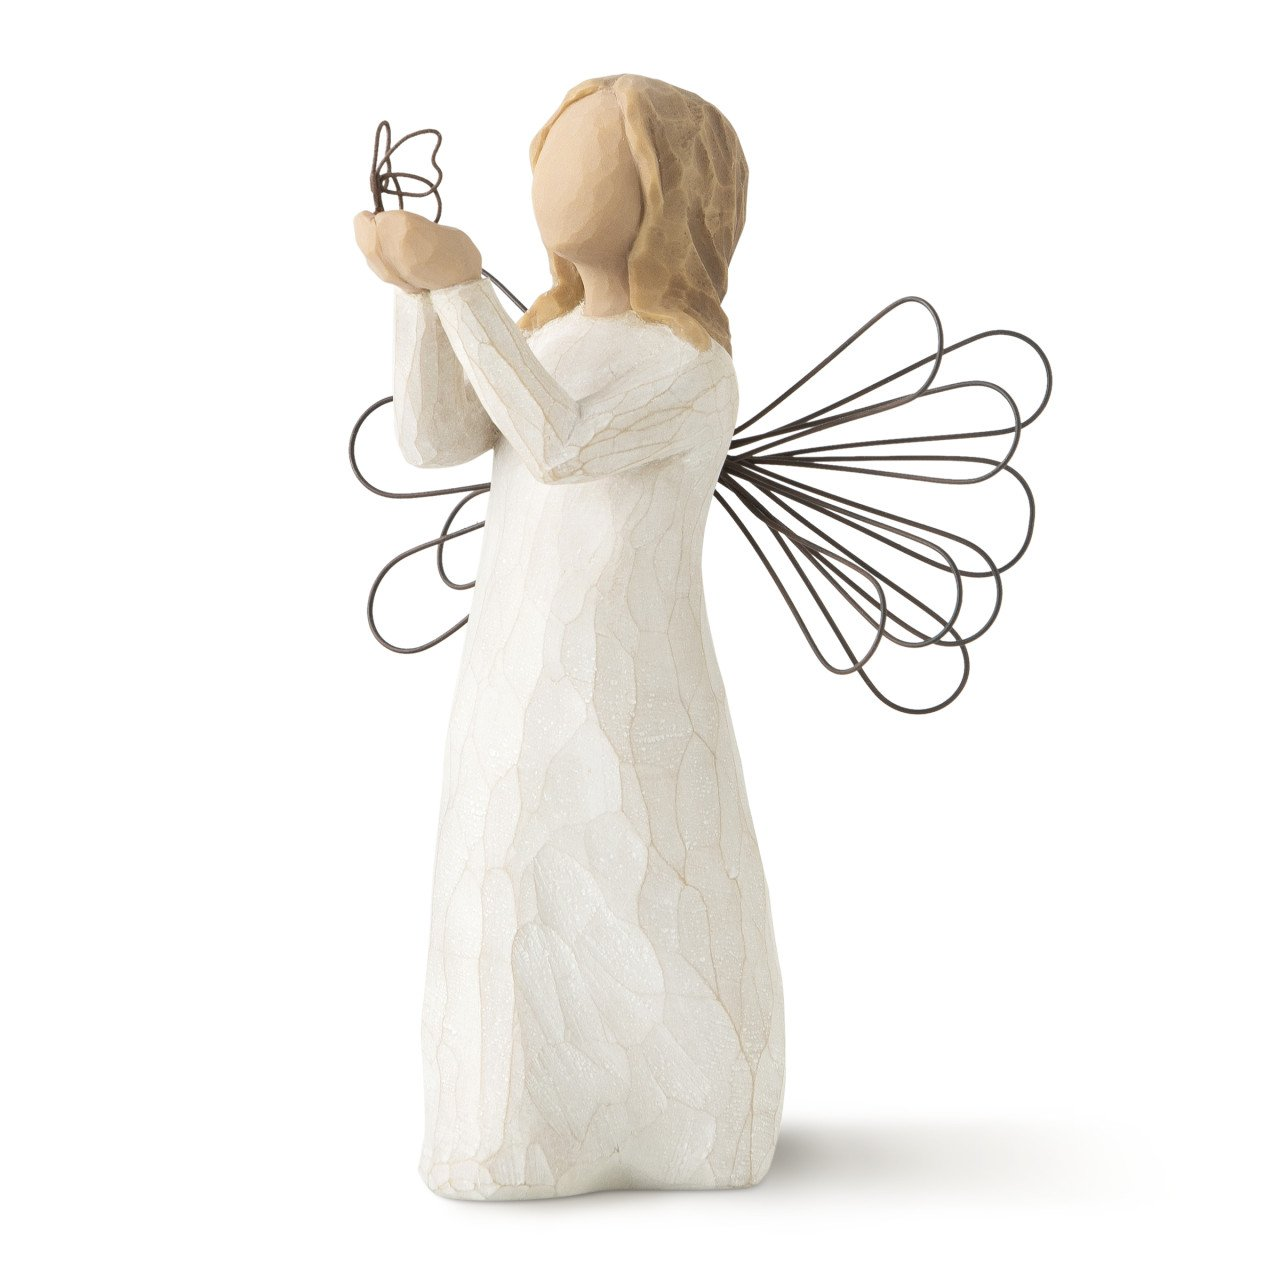 Willow Tree Angel of Freedom, sculpted hand-painted figure